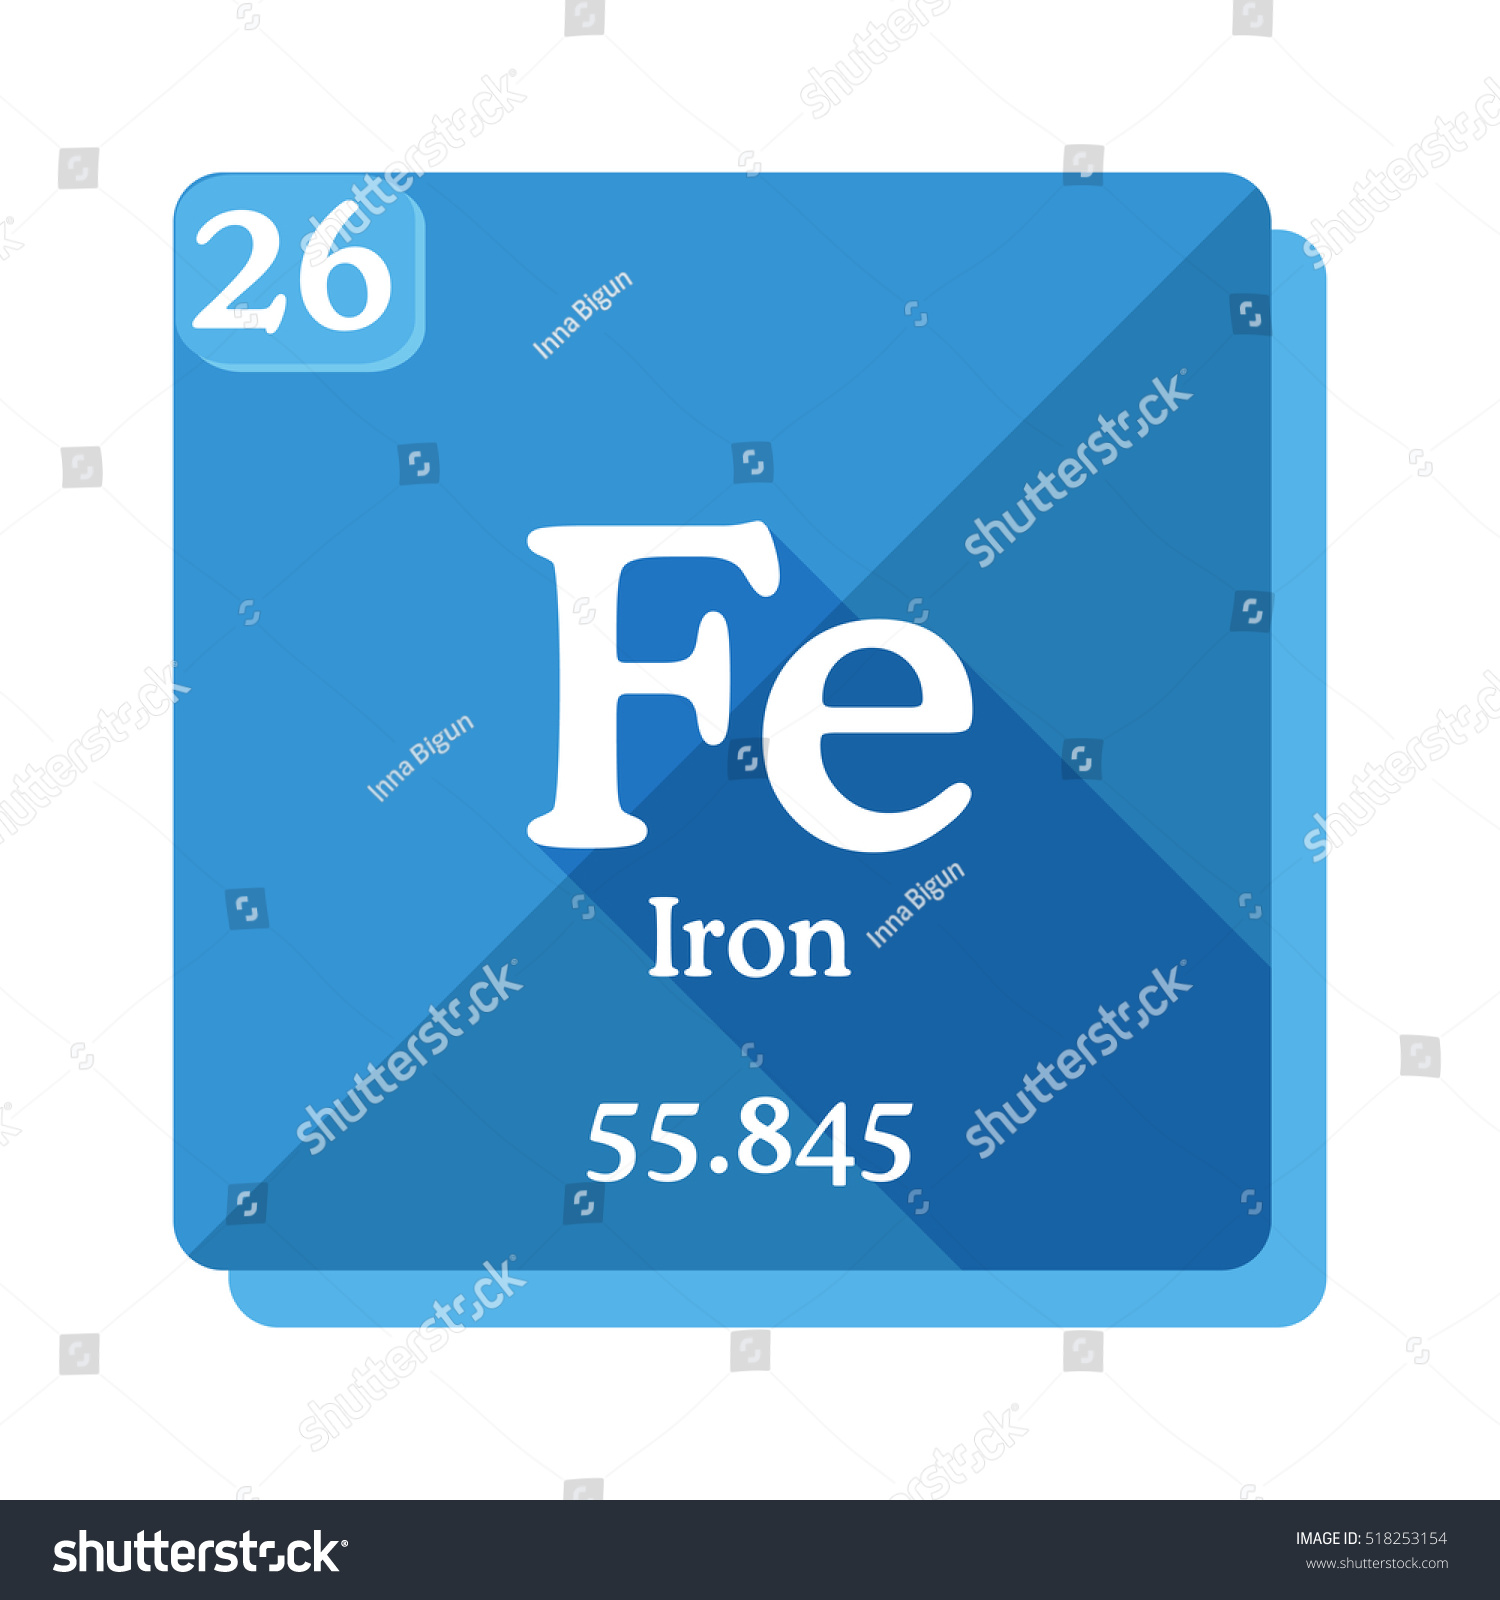 Whats iron on the periodic table images periodic table images iron fe periodic table images periodic table images fe iron periodic table gallery periodic table images gamestrikefo Choice Image